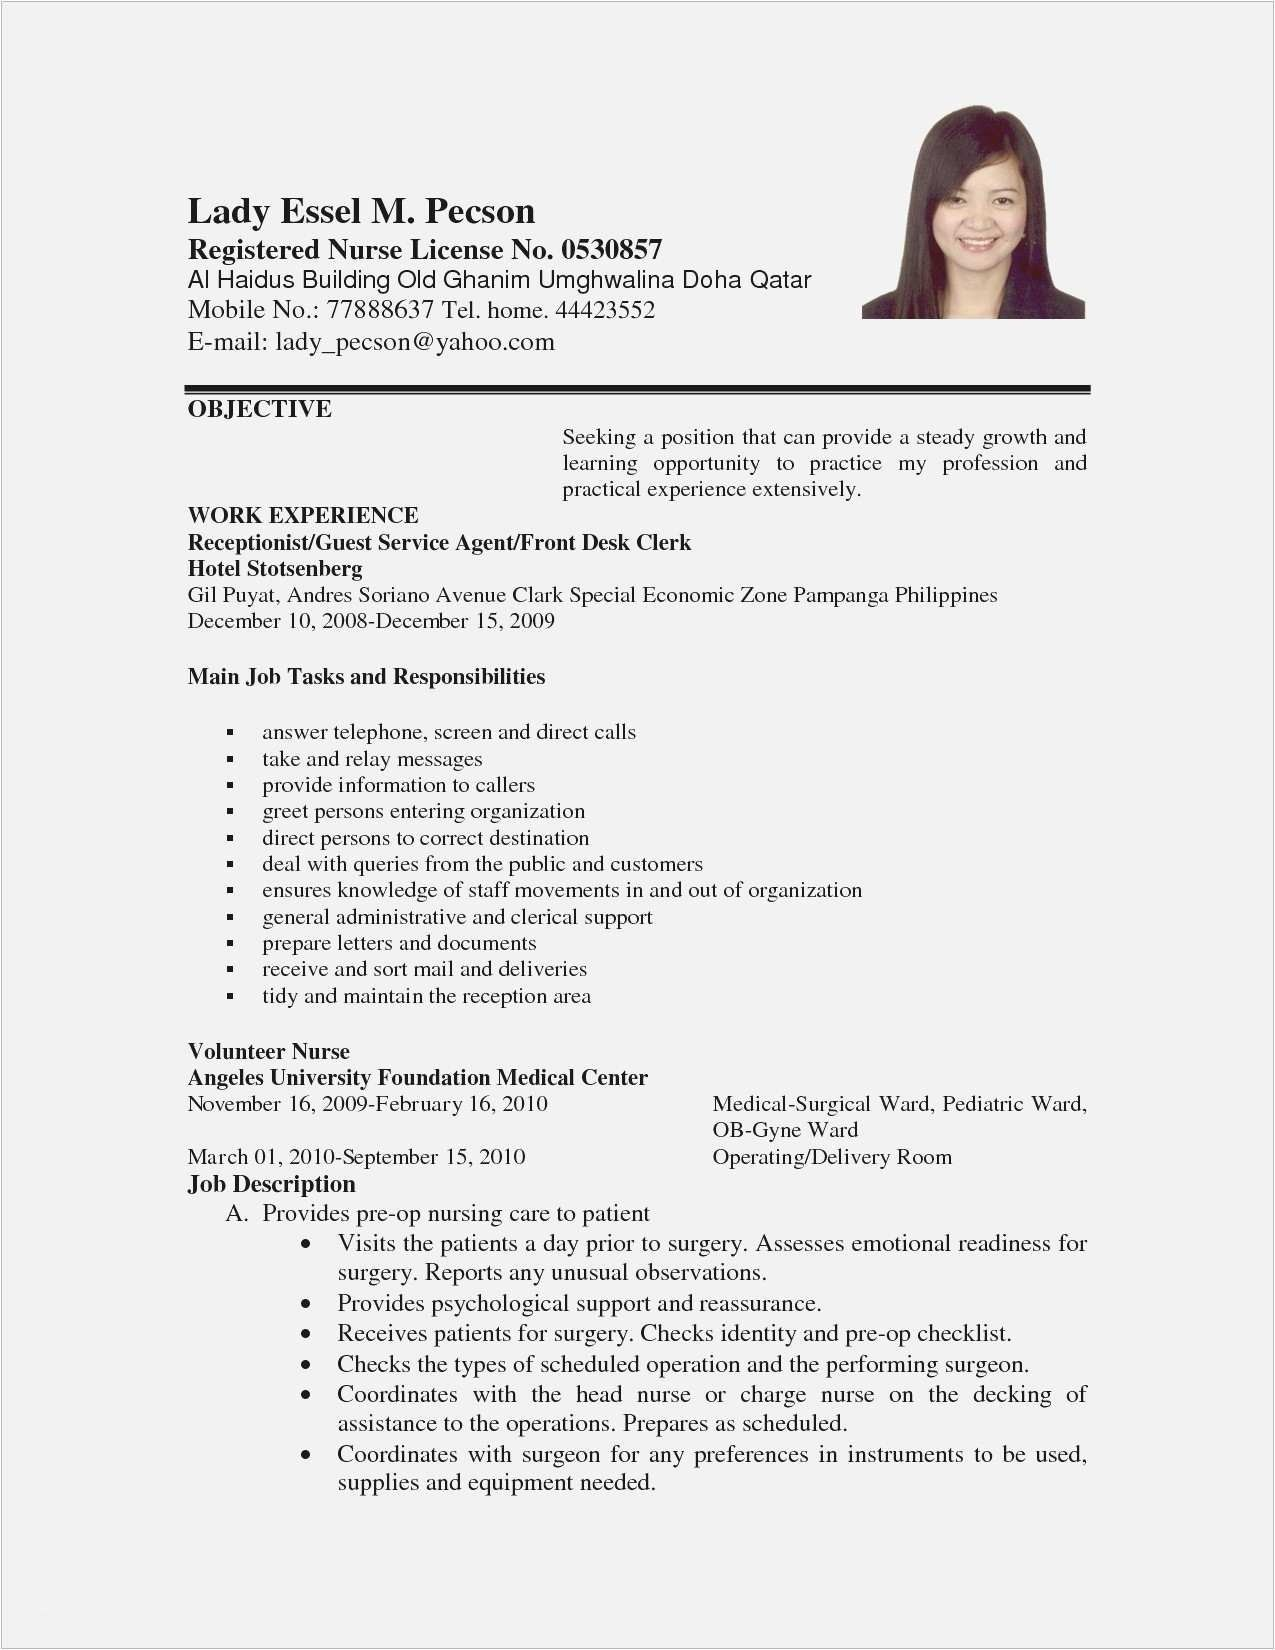 Download Valid Business Plan Templates Pdf can save at